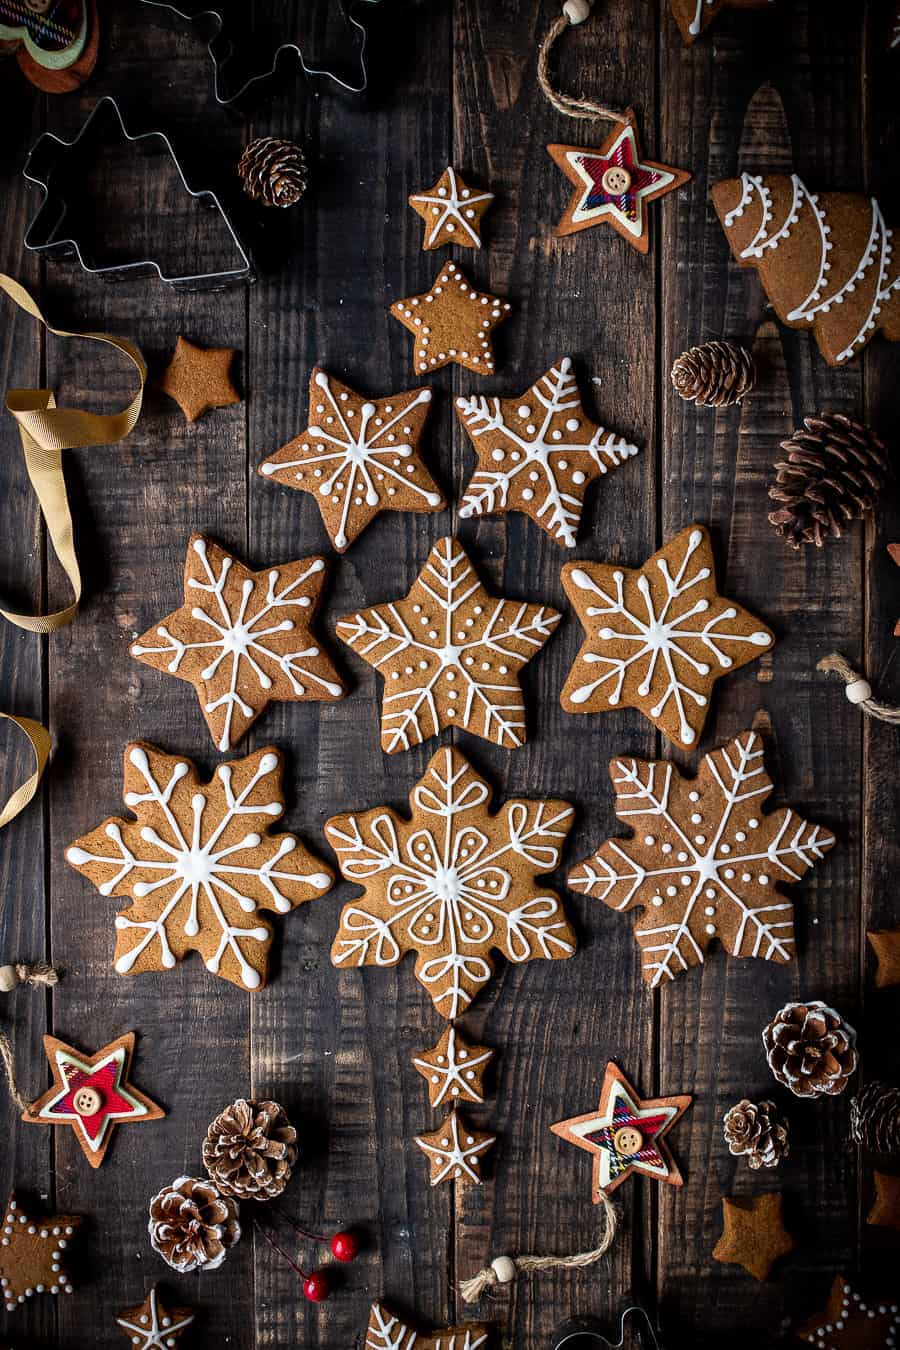 Vegan gingerbread snowflake cookies arranged in a christmas tree shape with pine cones and christmas decorations.